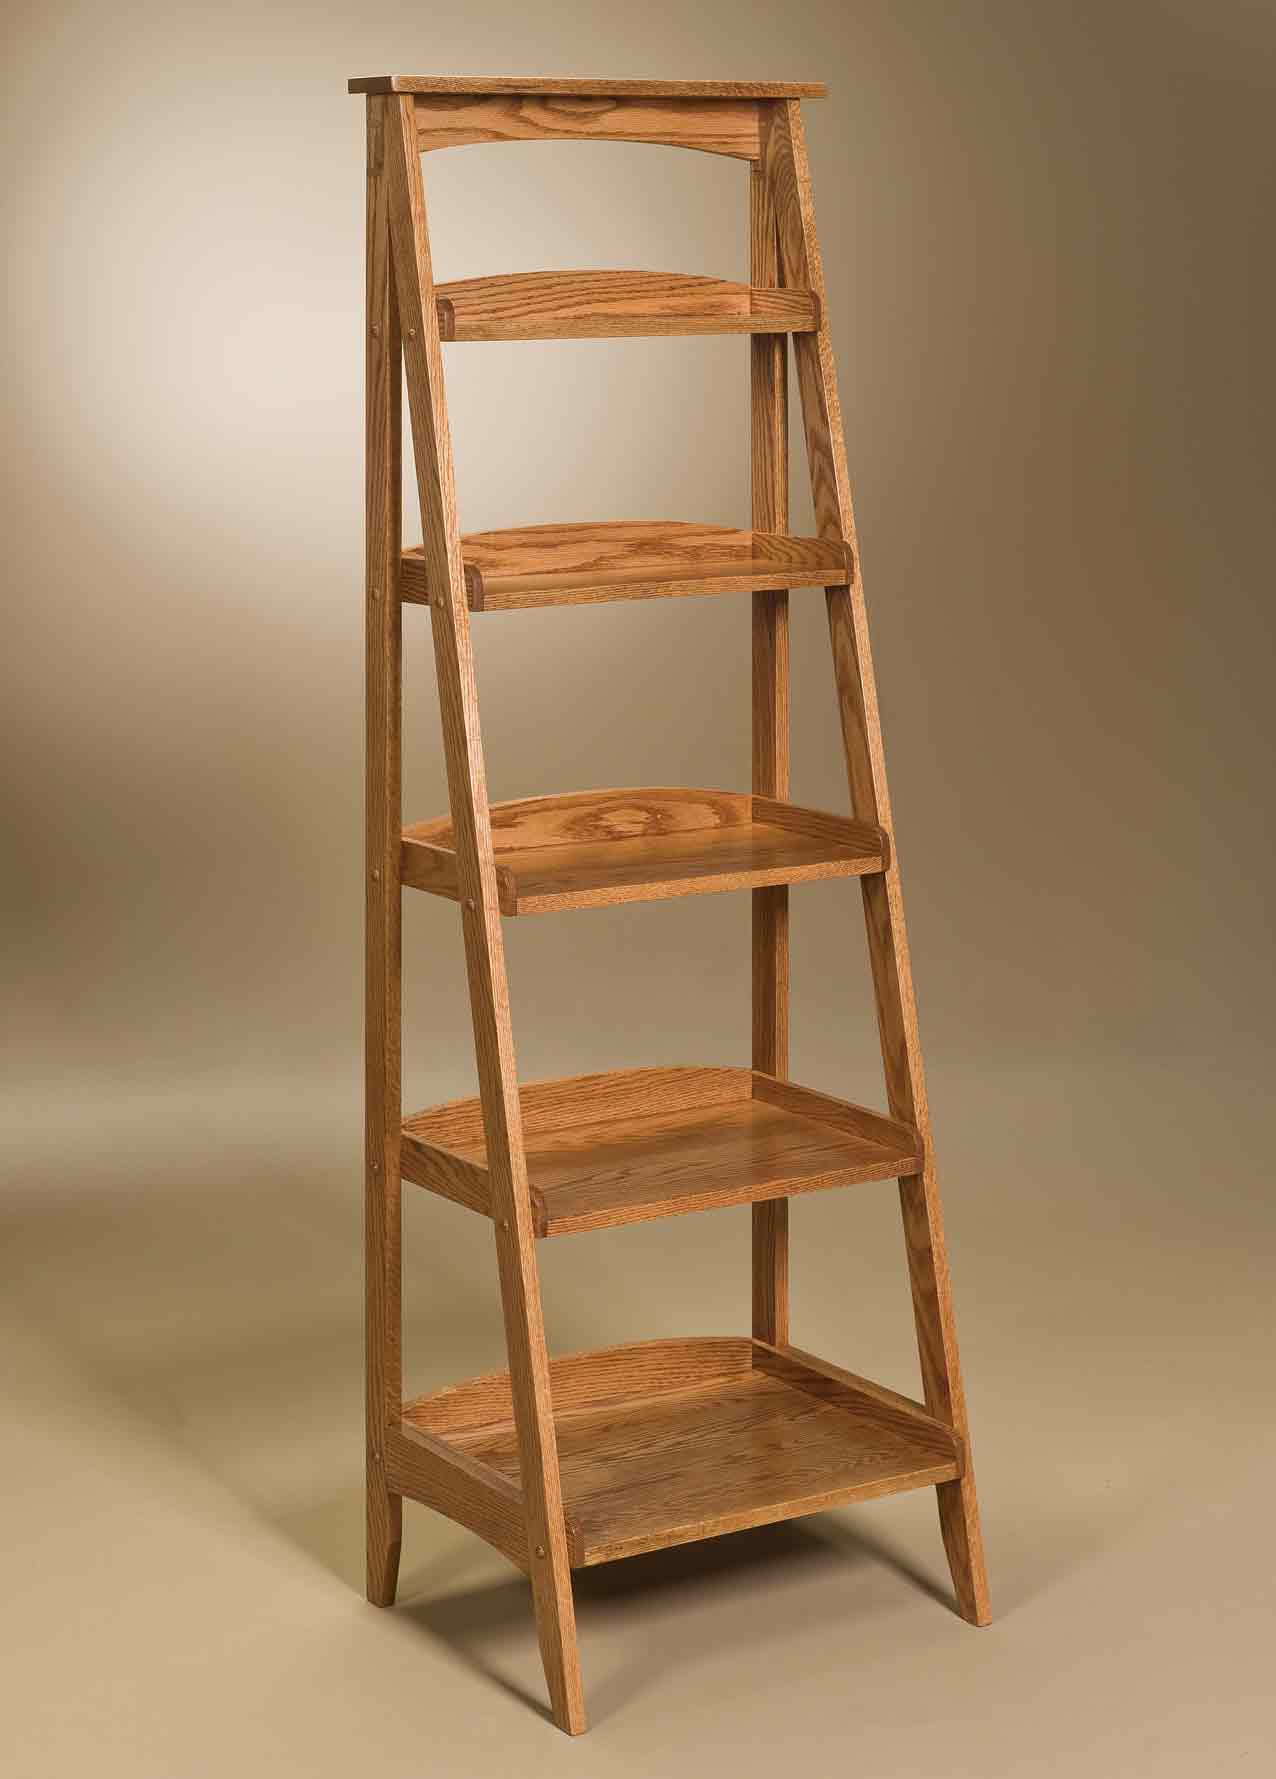 Ladder Stand D 12 For 449 00 In Display Amish Furniture